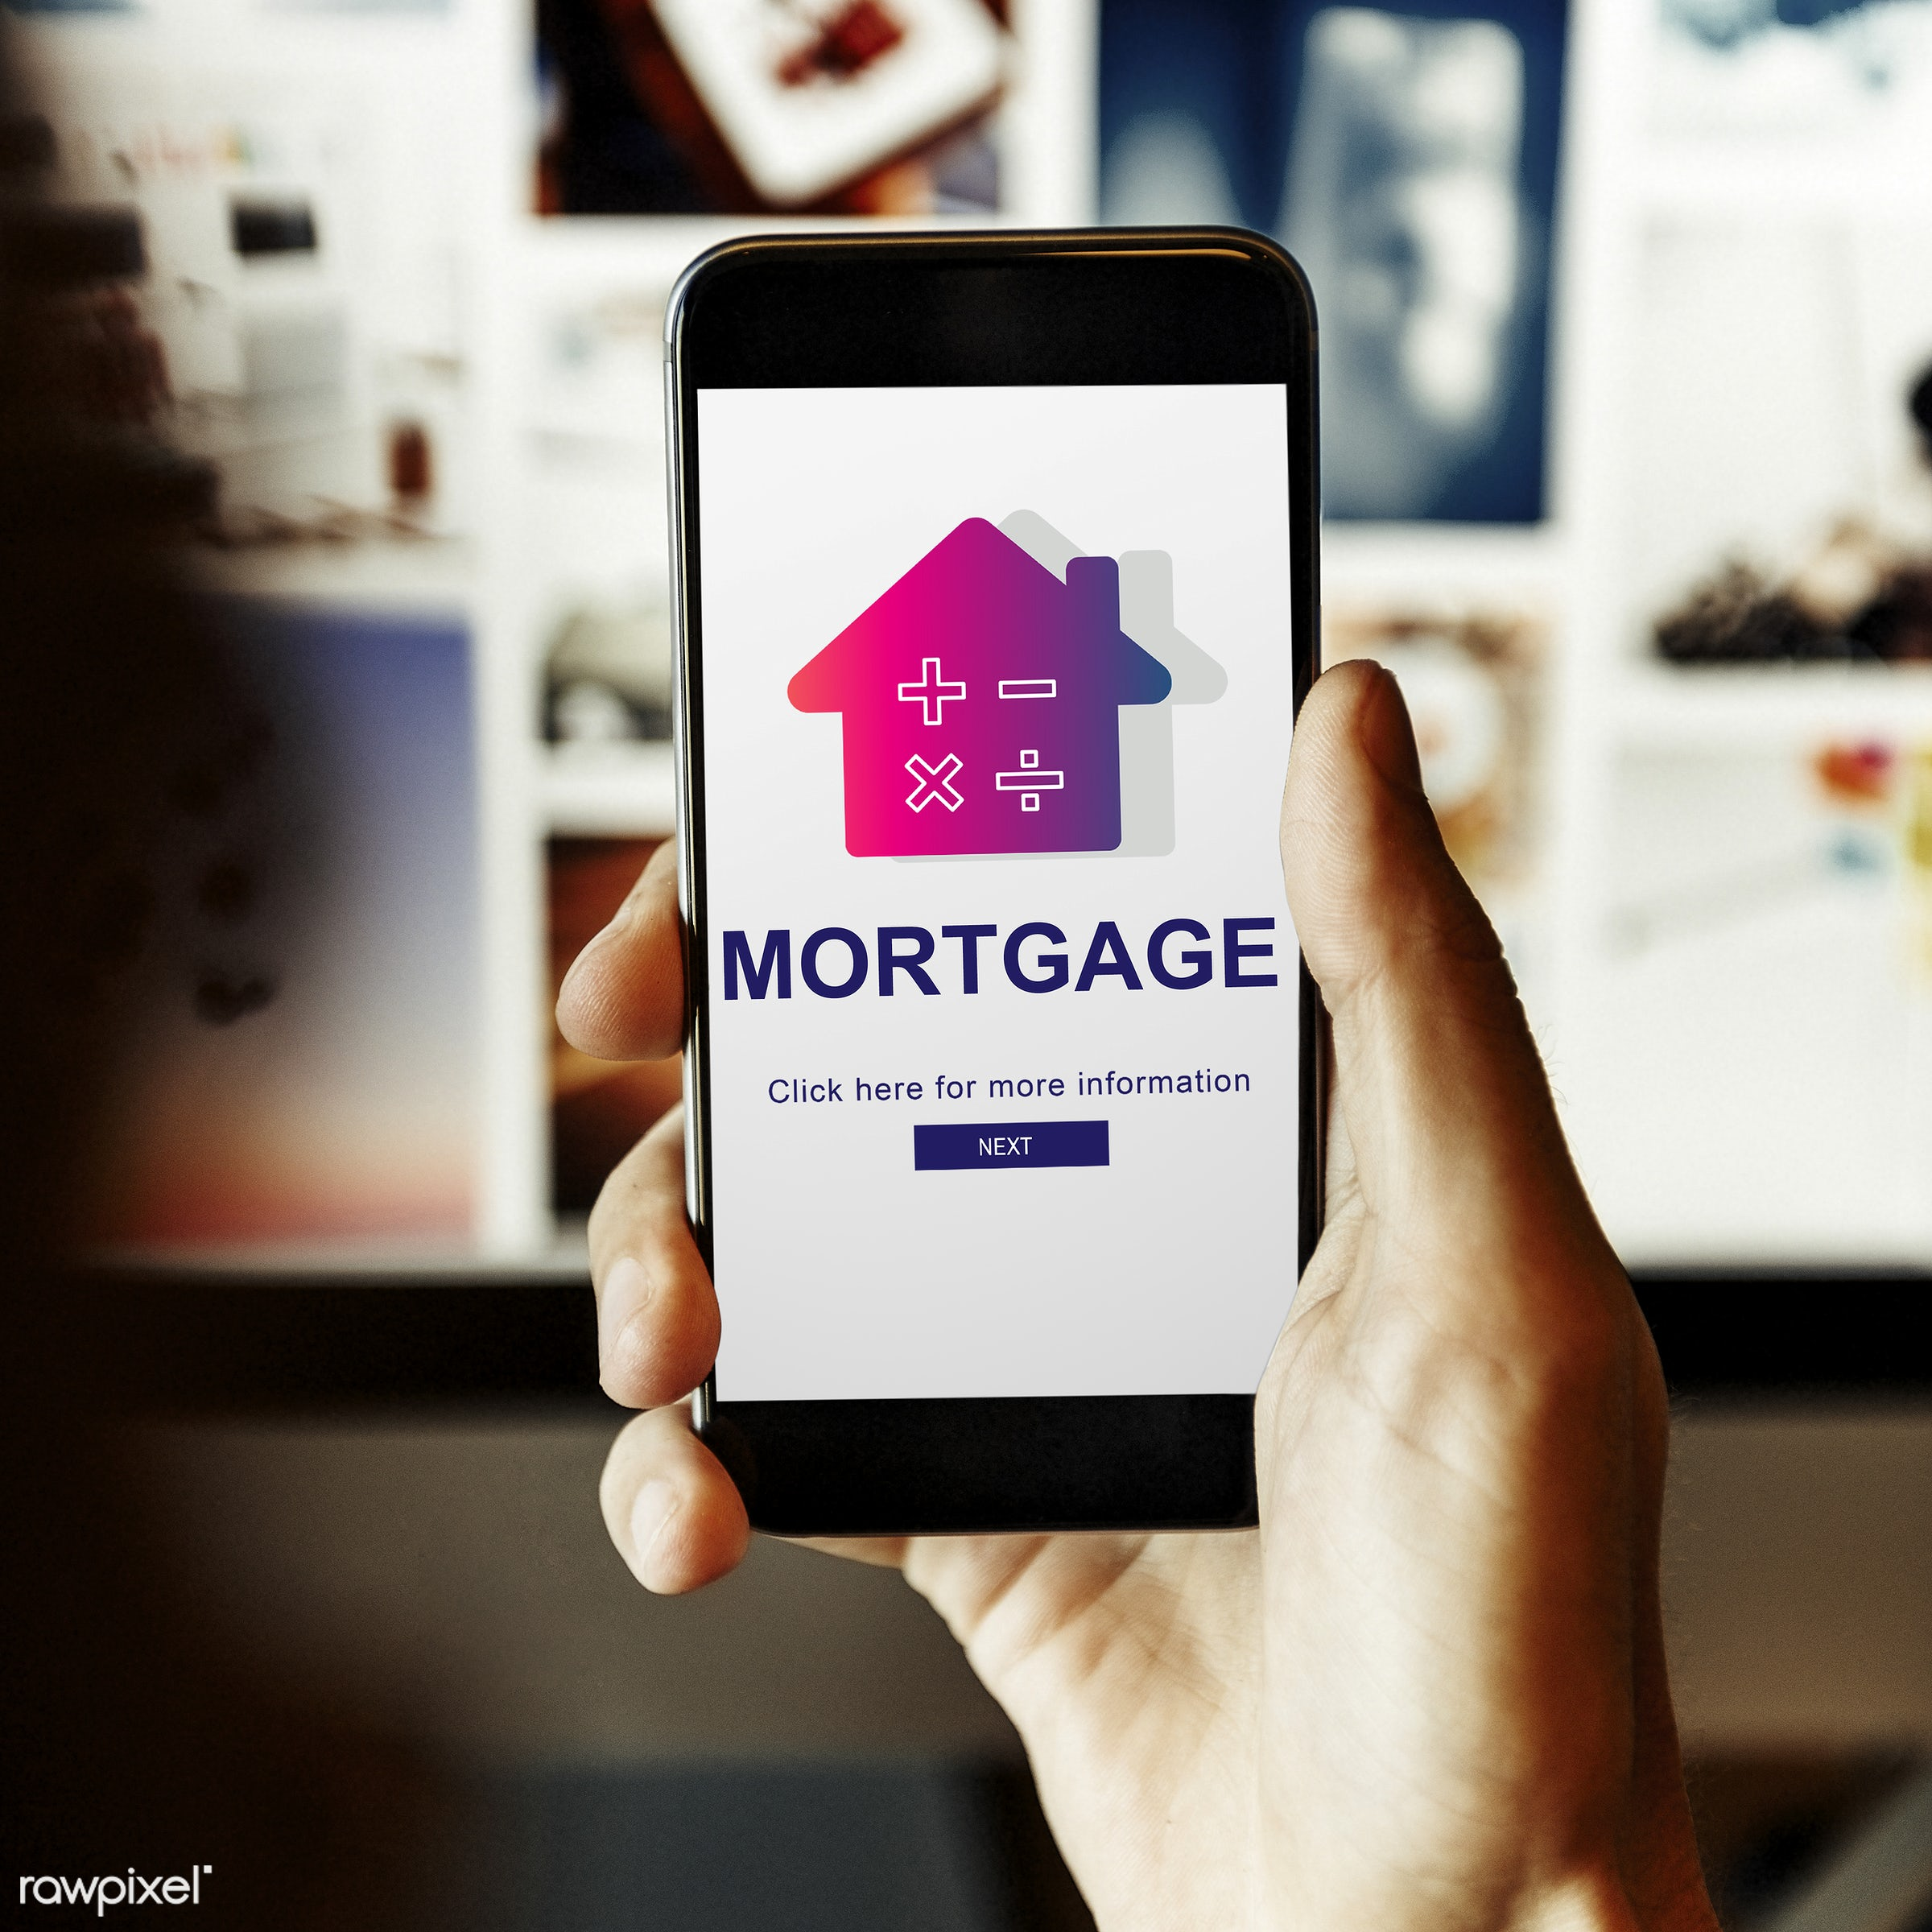 blog, browsing, budget, buy, communication, connect, digital device, estate, finance, home, home loan, house, insurance,...